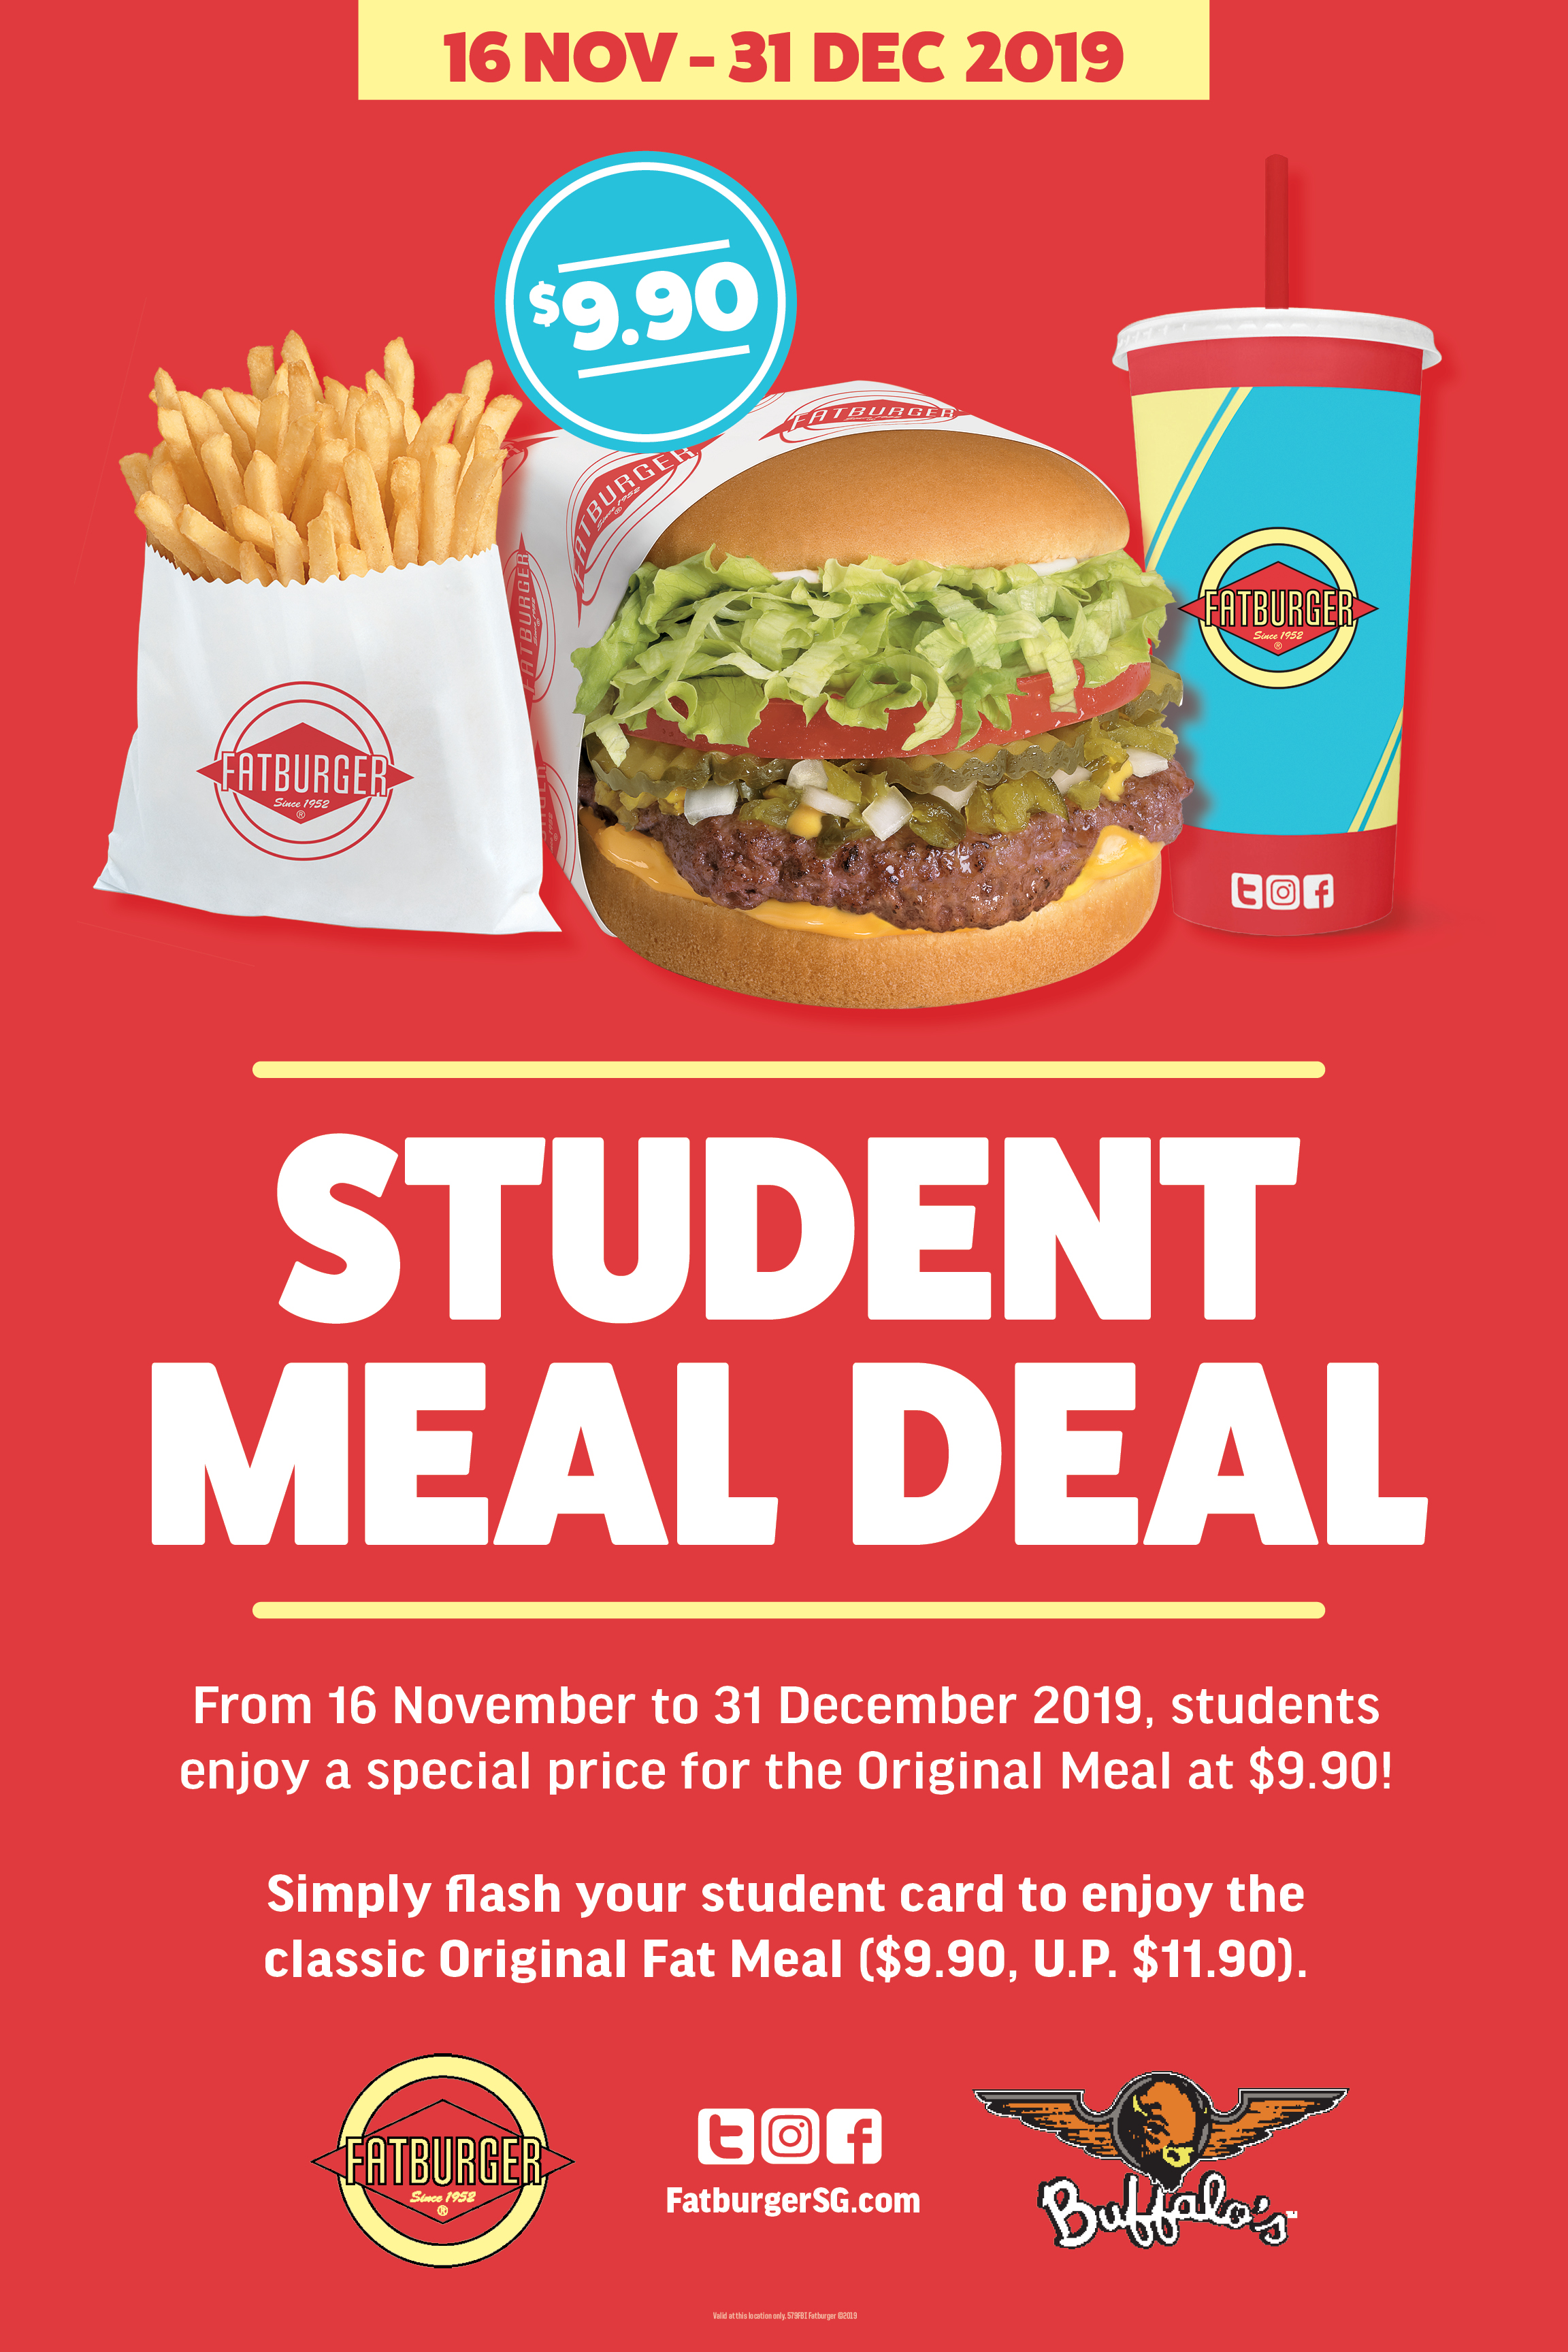 Fatburger Singapore School Holidays Students Special Price for The Original Meal at $9.90 Promotion 16 Nov - 31 Dec 2019 | Why Not Deals & Promotions